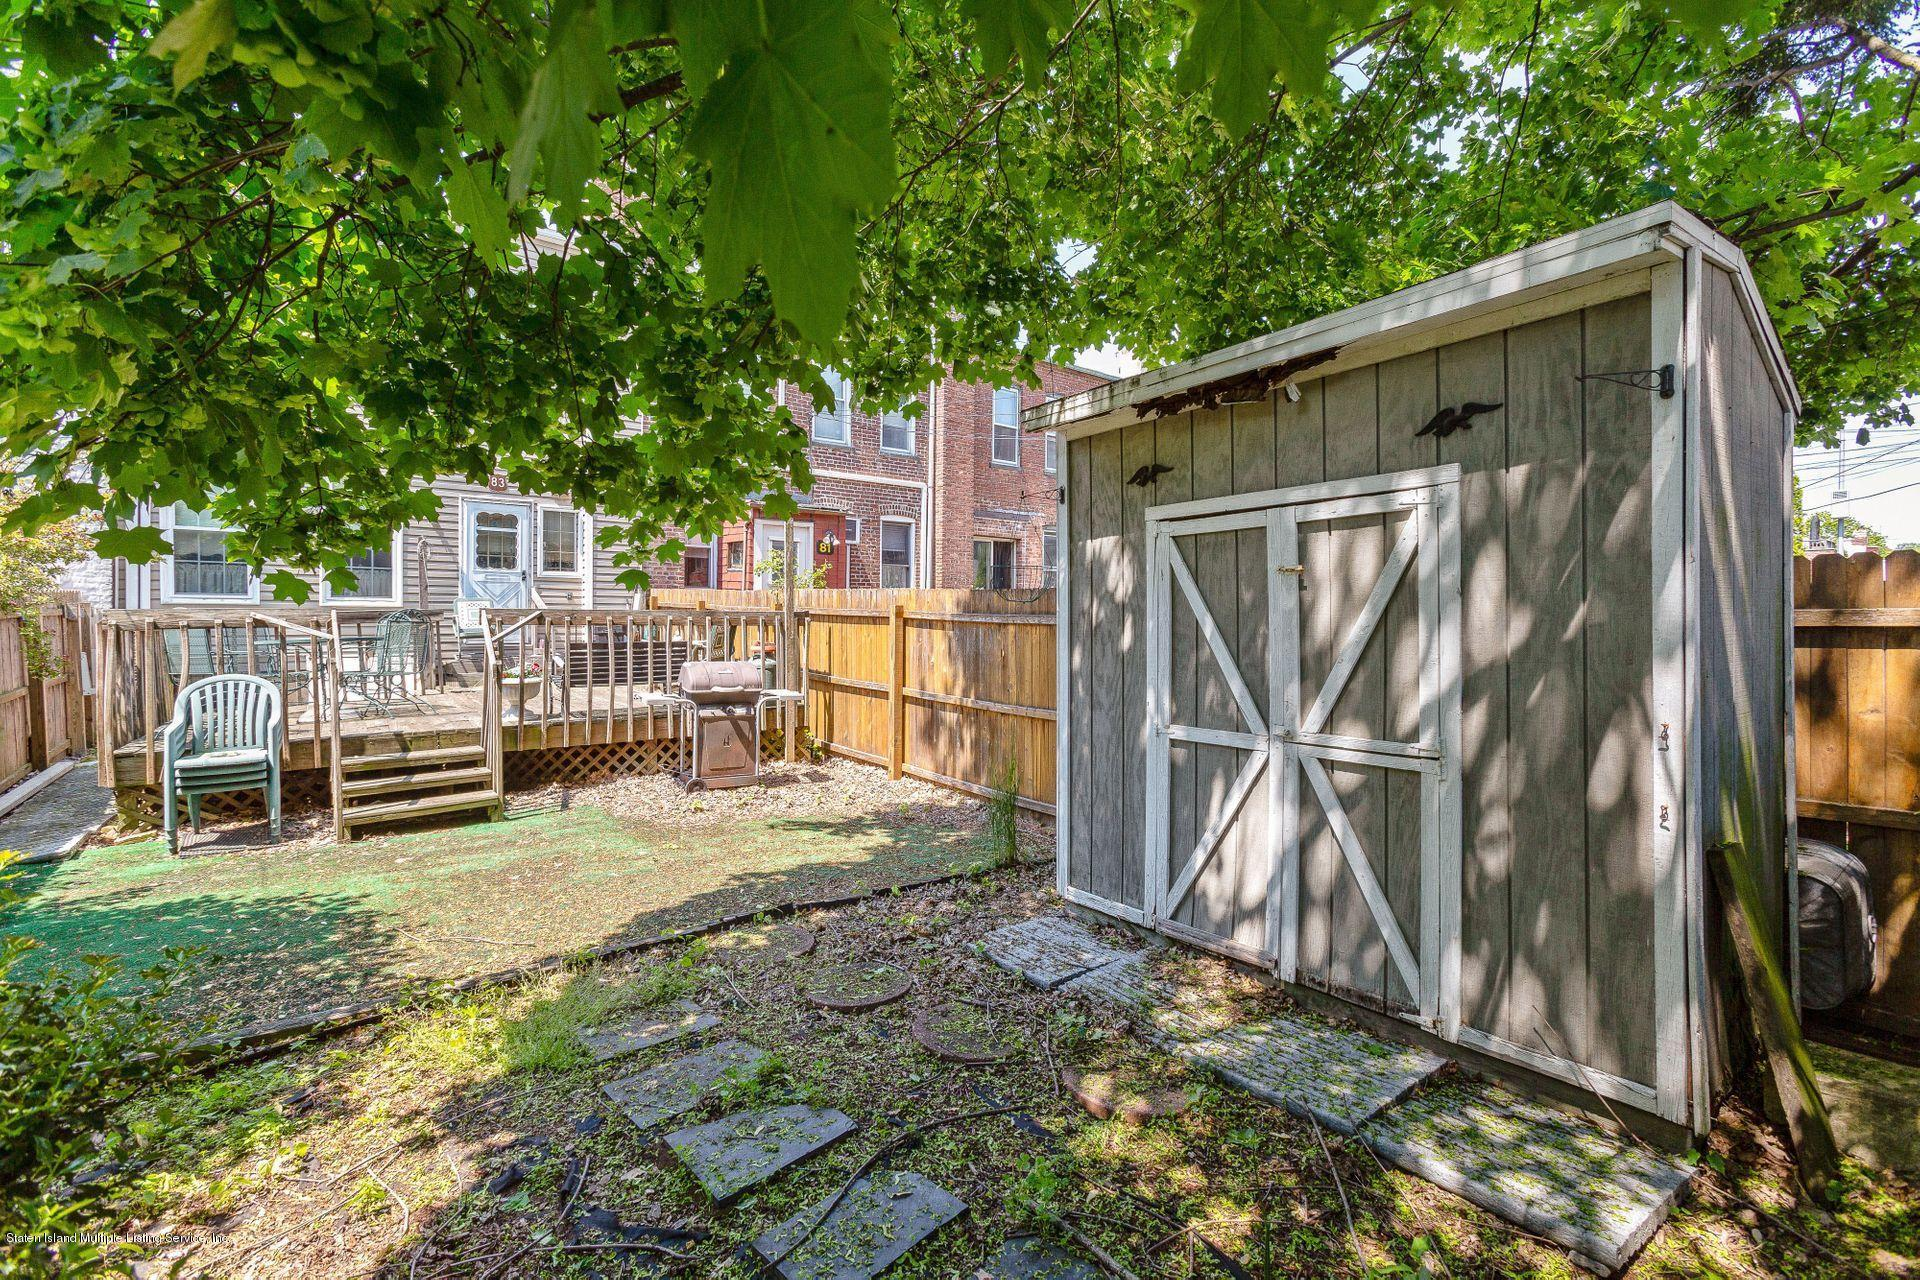 Single Family - Attached 83 Chester Avenue  Brooklyn, NY 11218, MLS-1131841-16